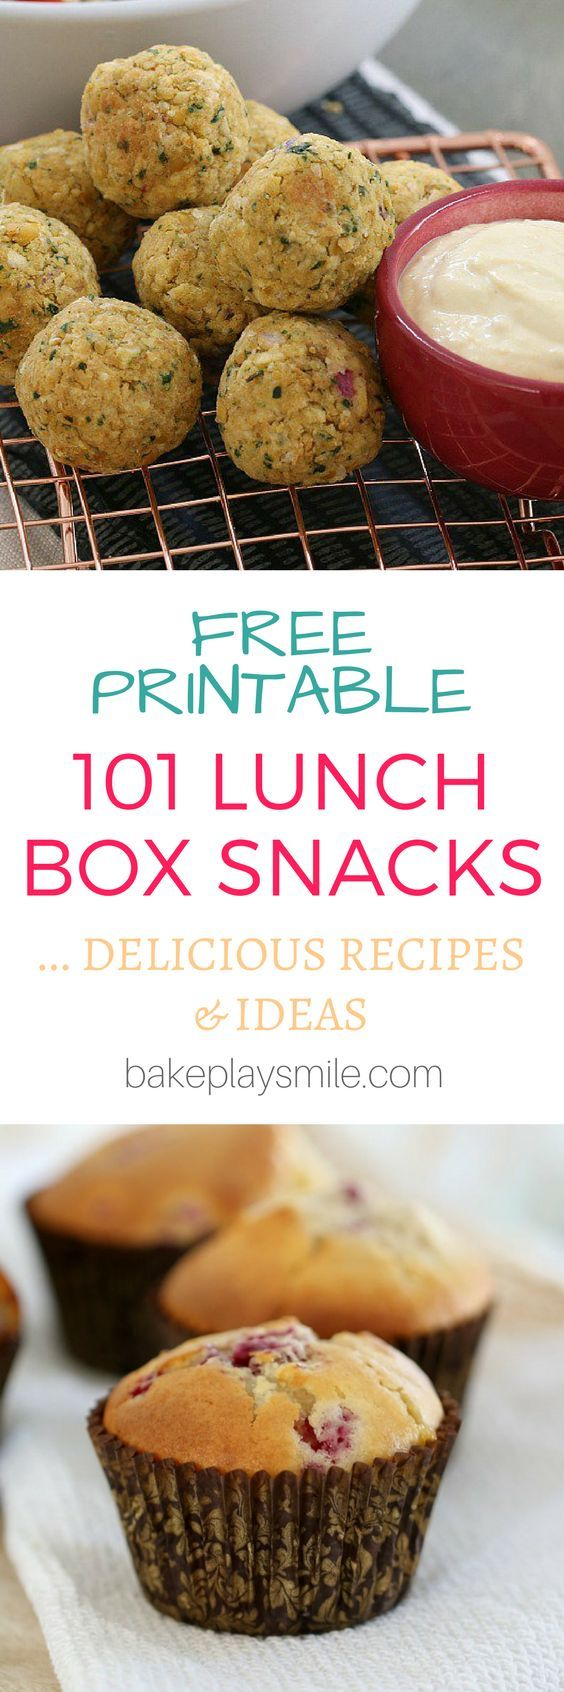 101 lunch box snacks and recipes these are the very best of the best! Including 50 sweet recipes and 51 savoury recipes (and not a sandwich in sight!). And there's also a free printable to pop onto your kitchen fridge!